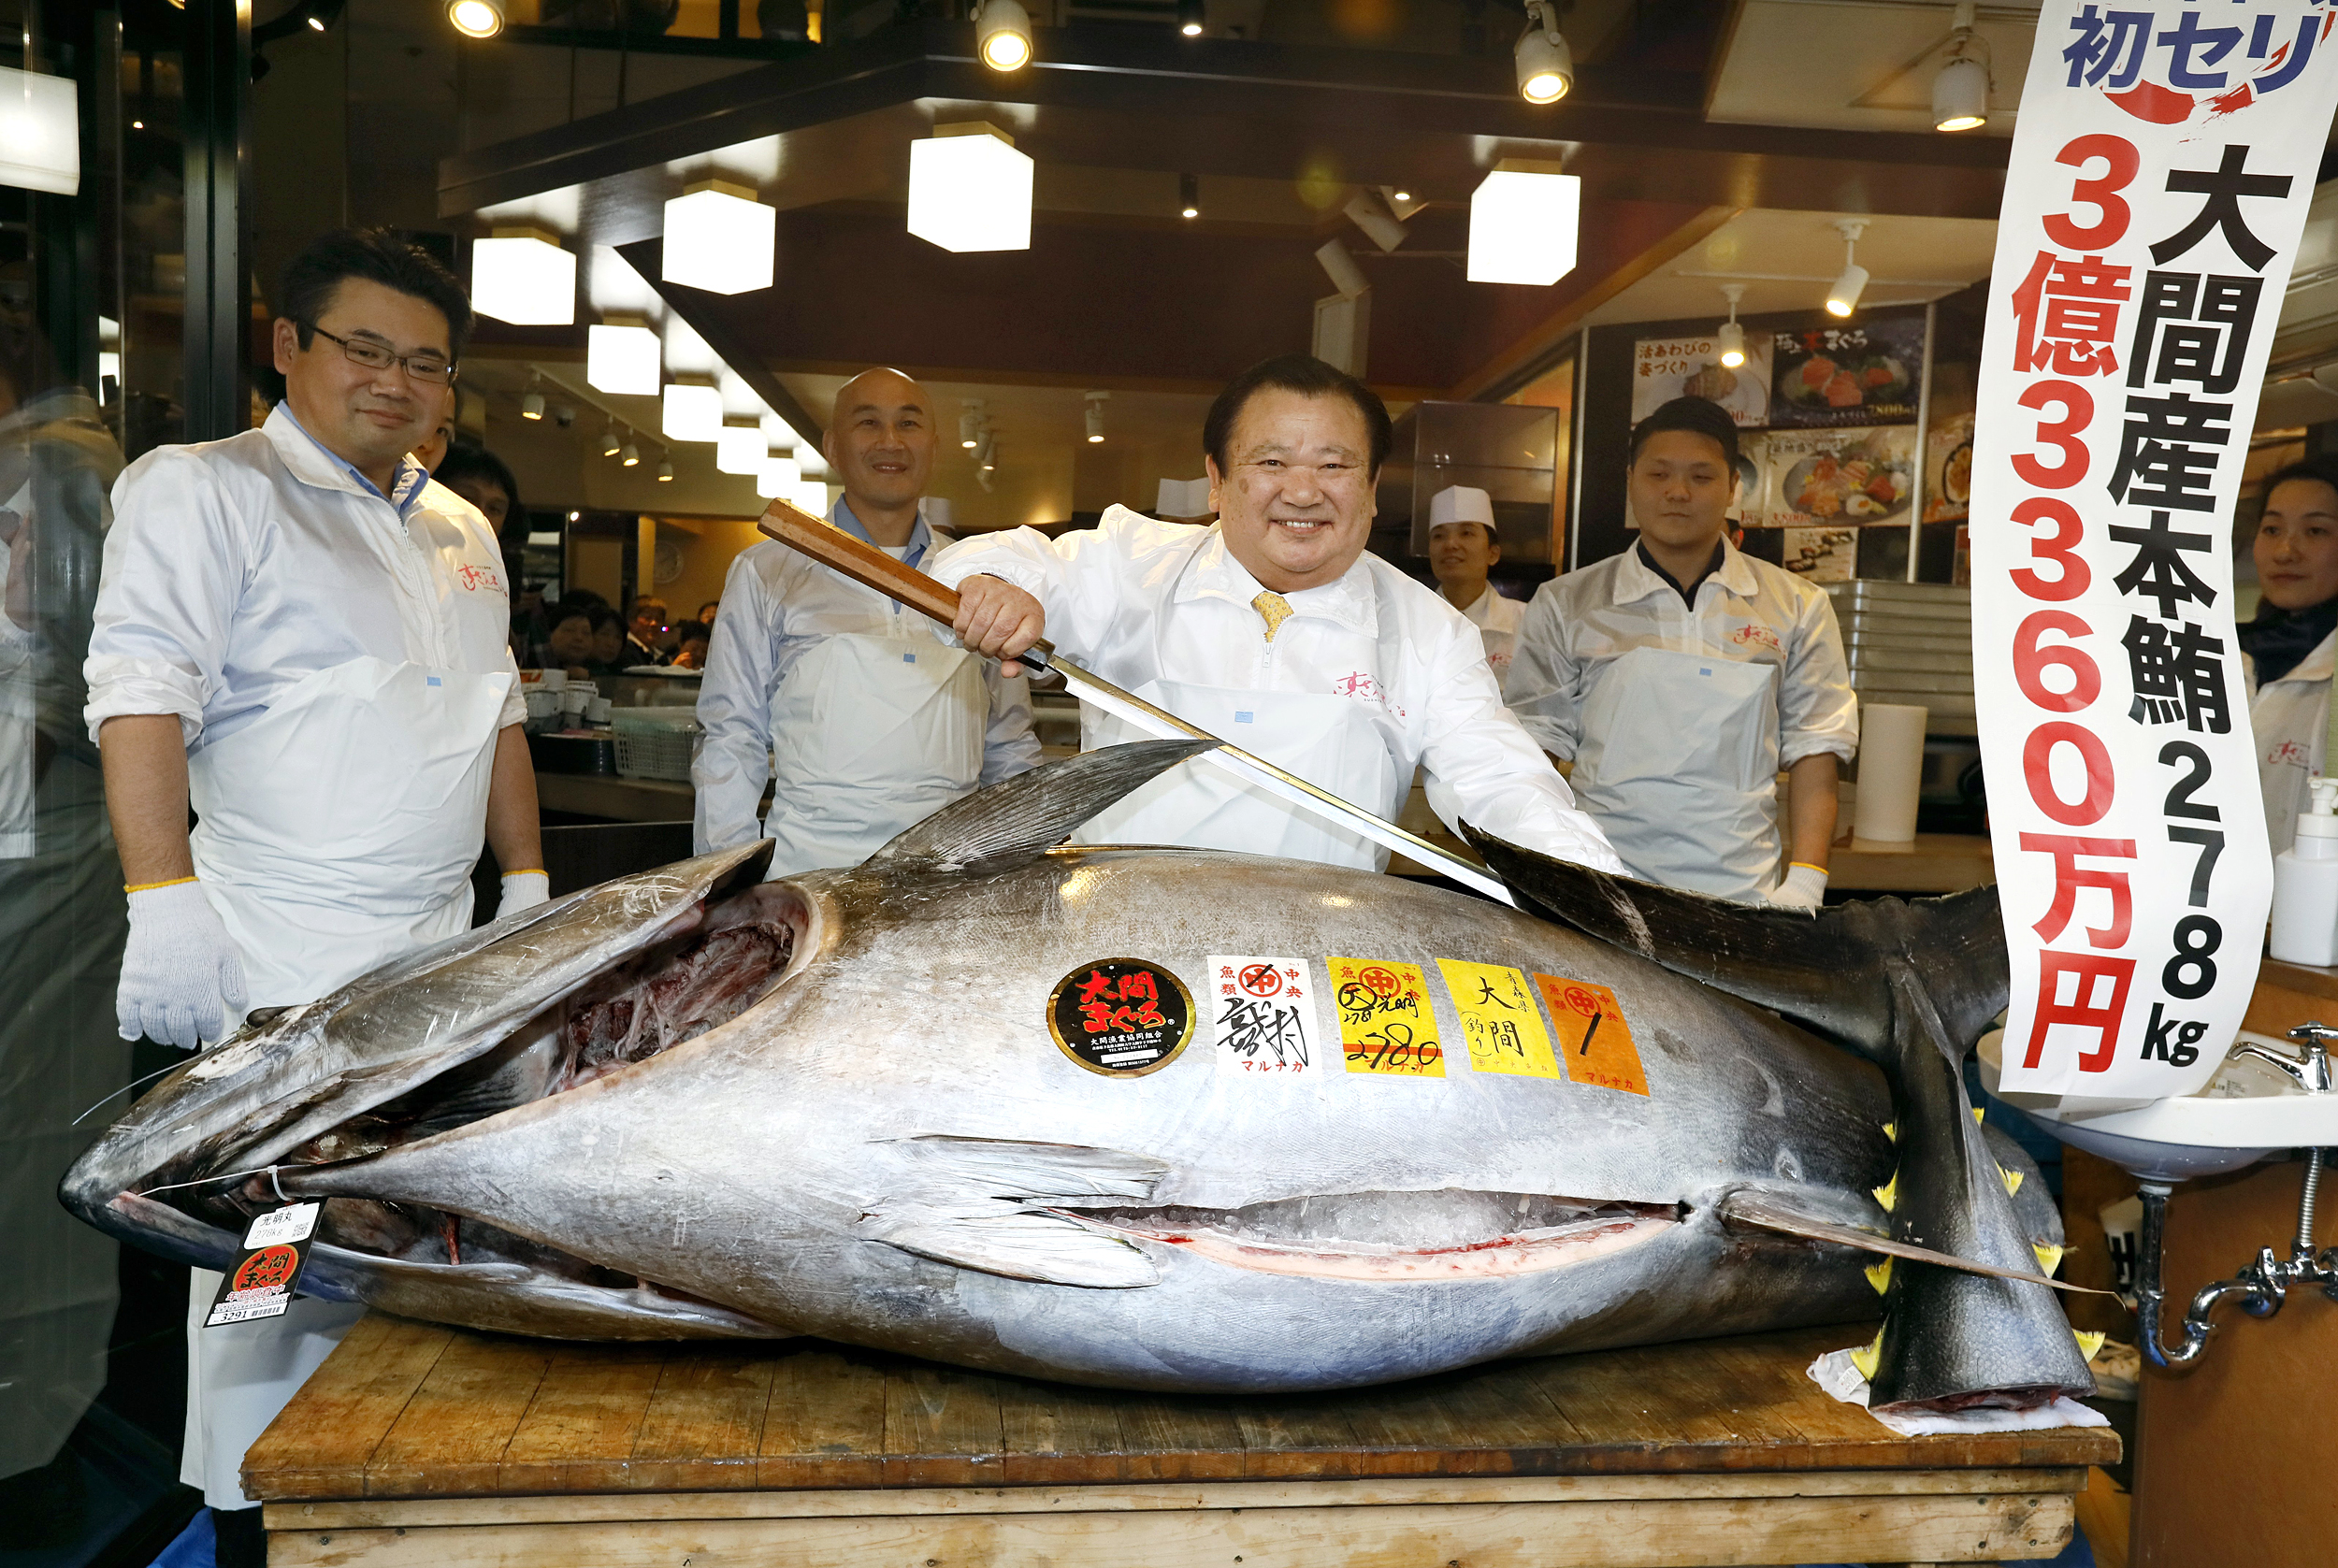 Bluefin Goes For 3 Million At 1st 2019 Sale At Tokyo Market